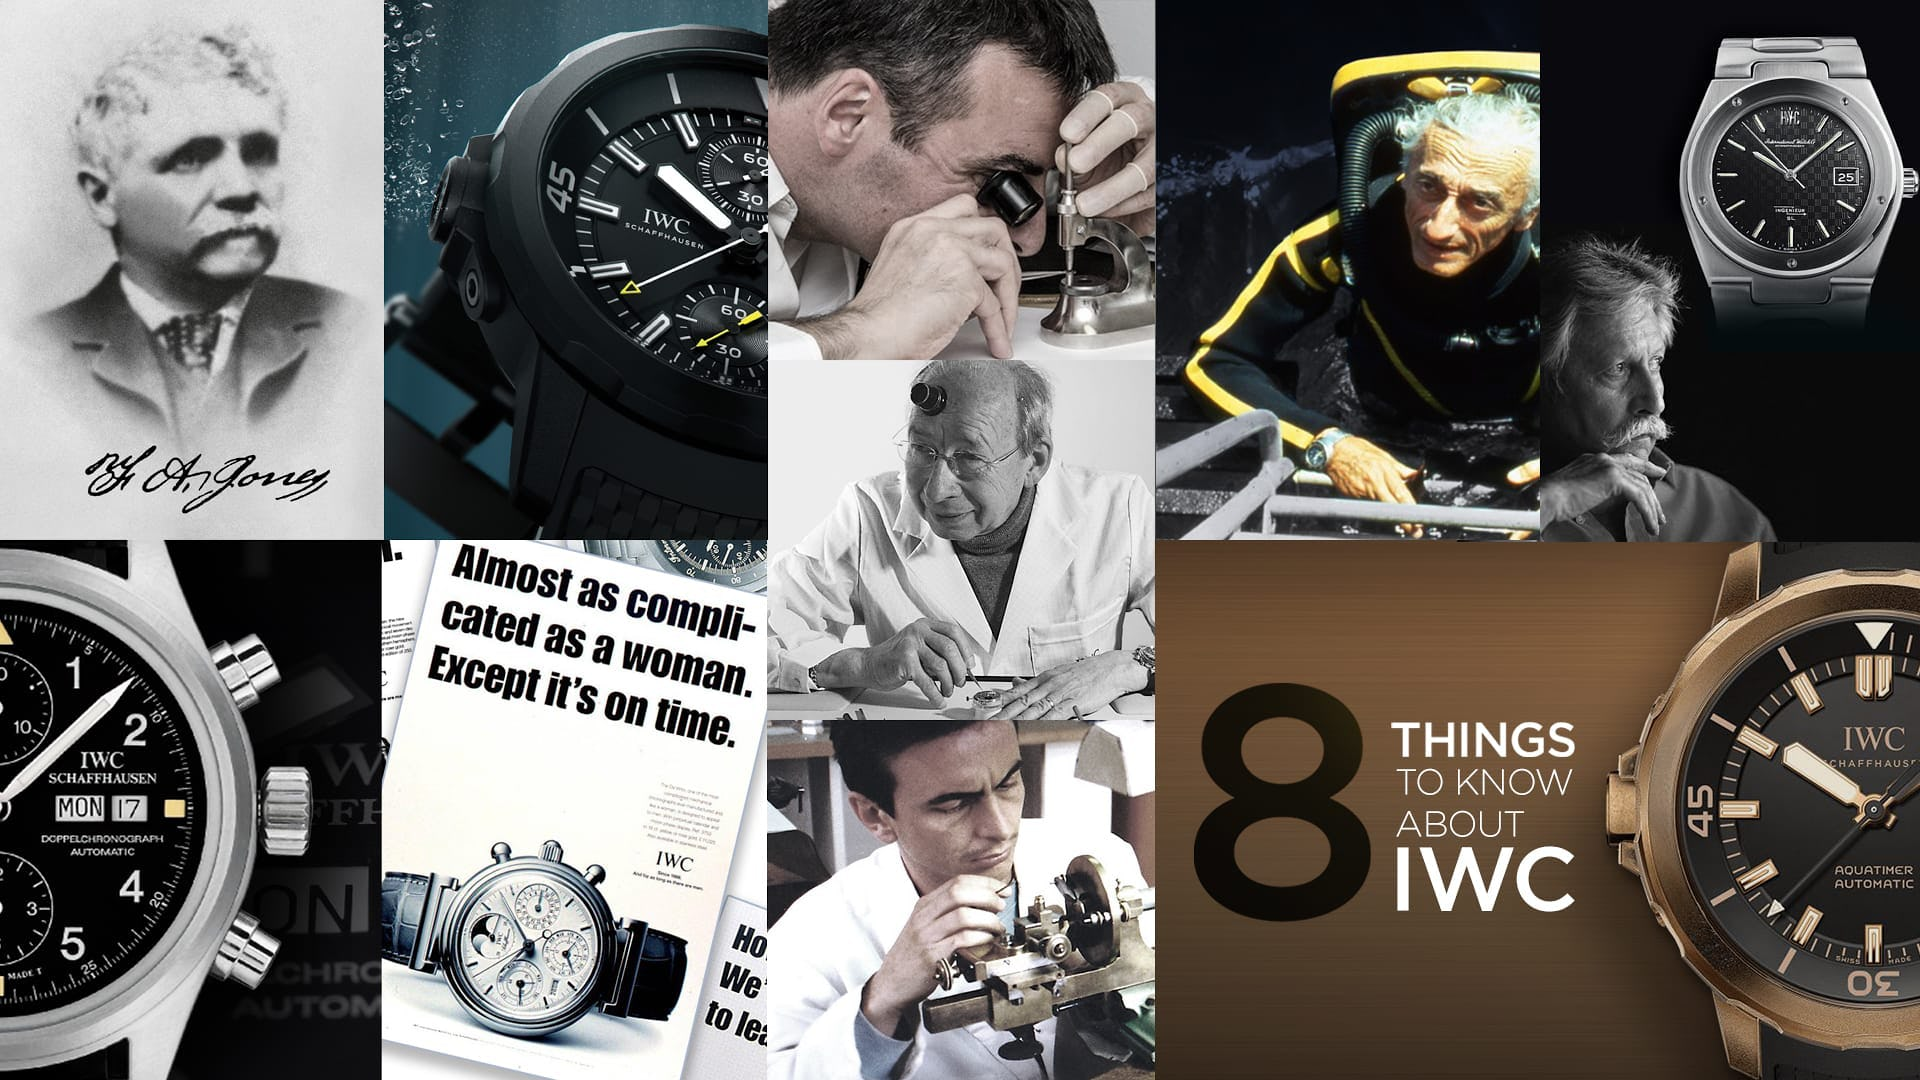 8 Things to Know About IWC